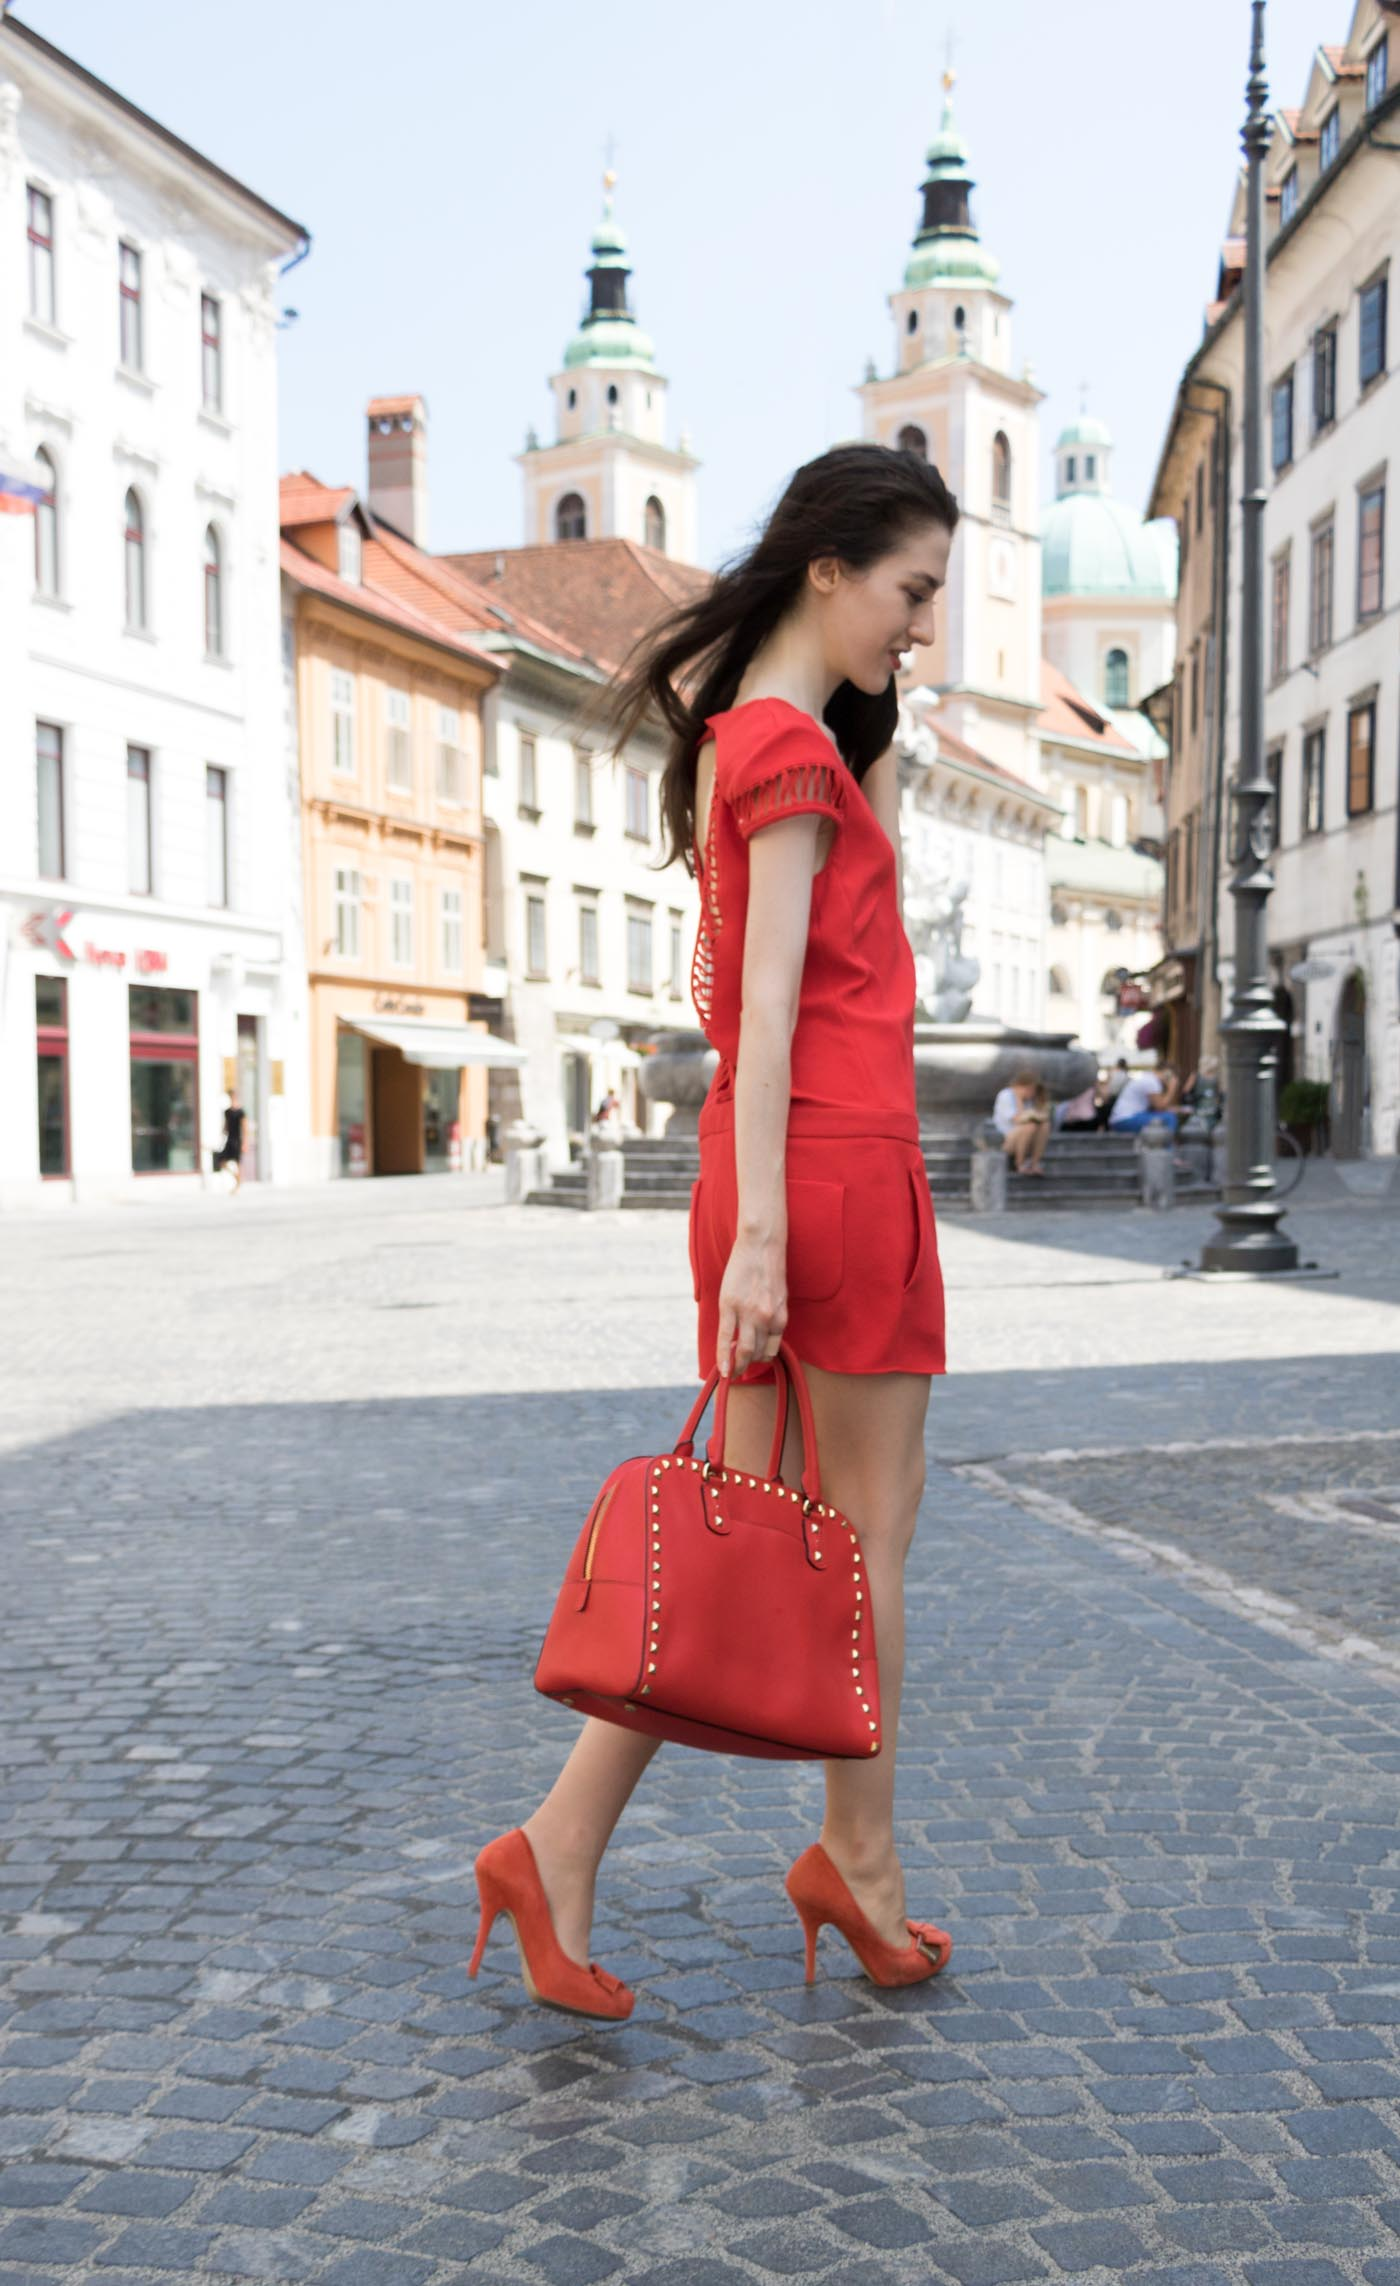 835cd2c76a98 Fashion Blogger Veronika Lipar Of Brunette From Wall Street On How To Wear  Red